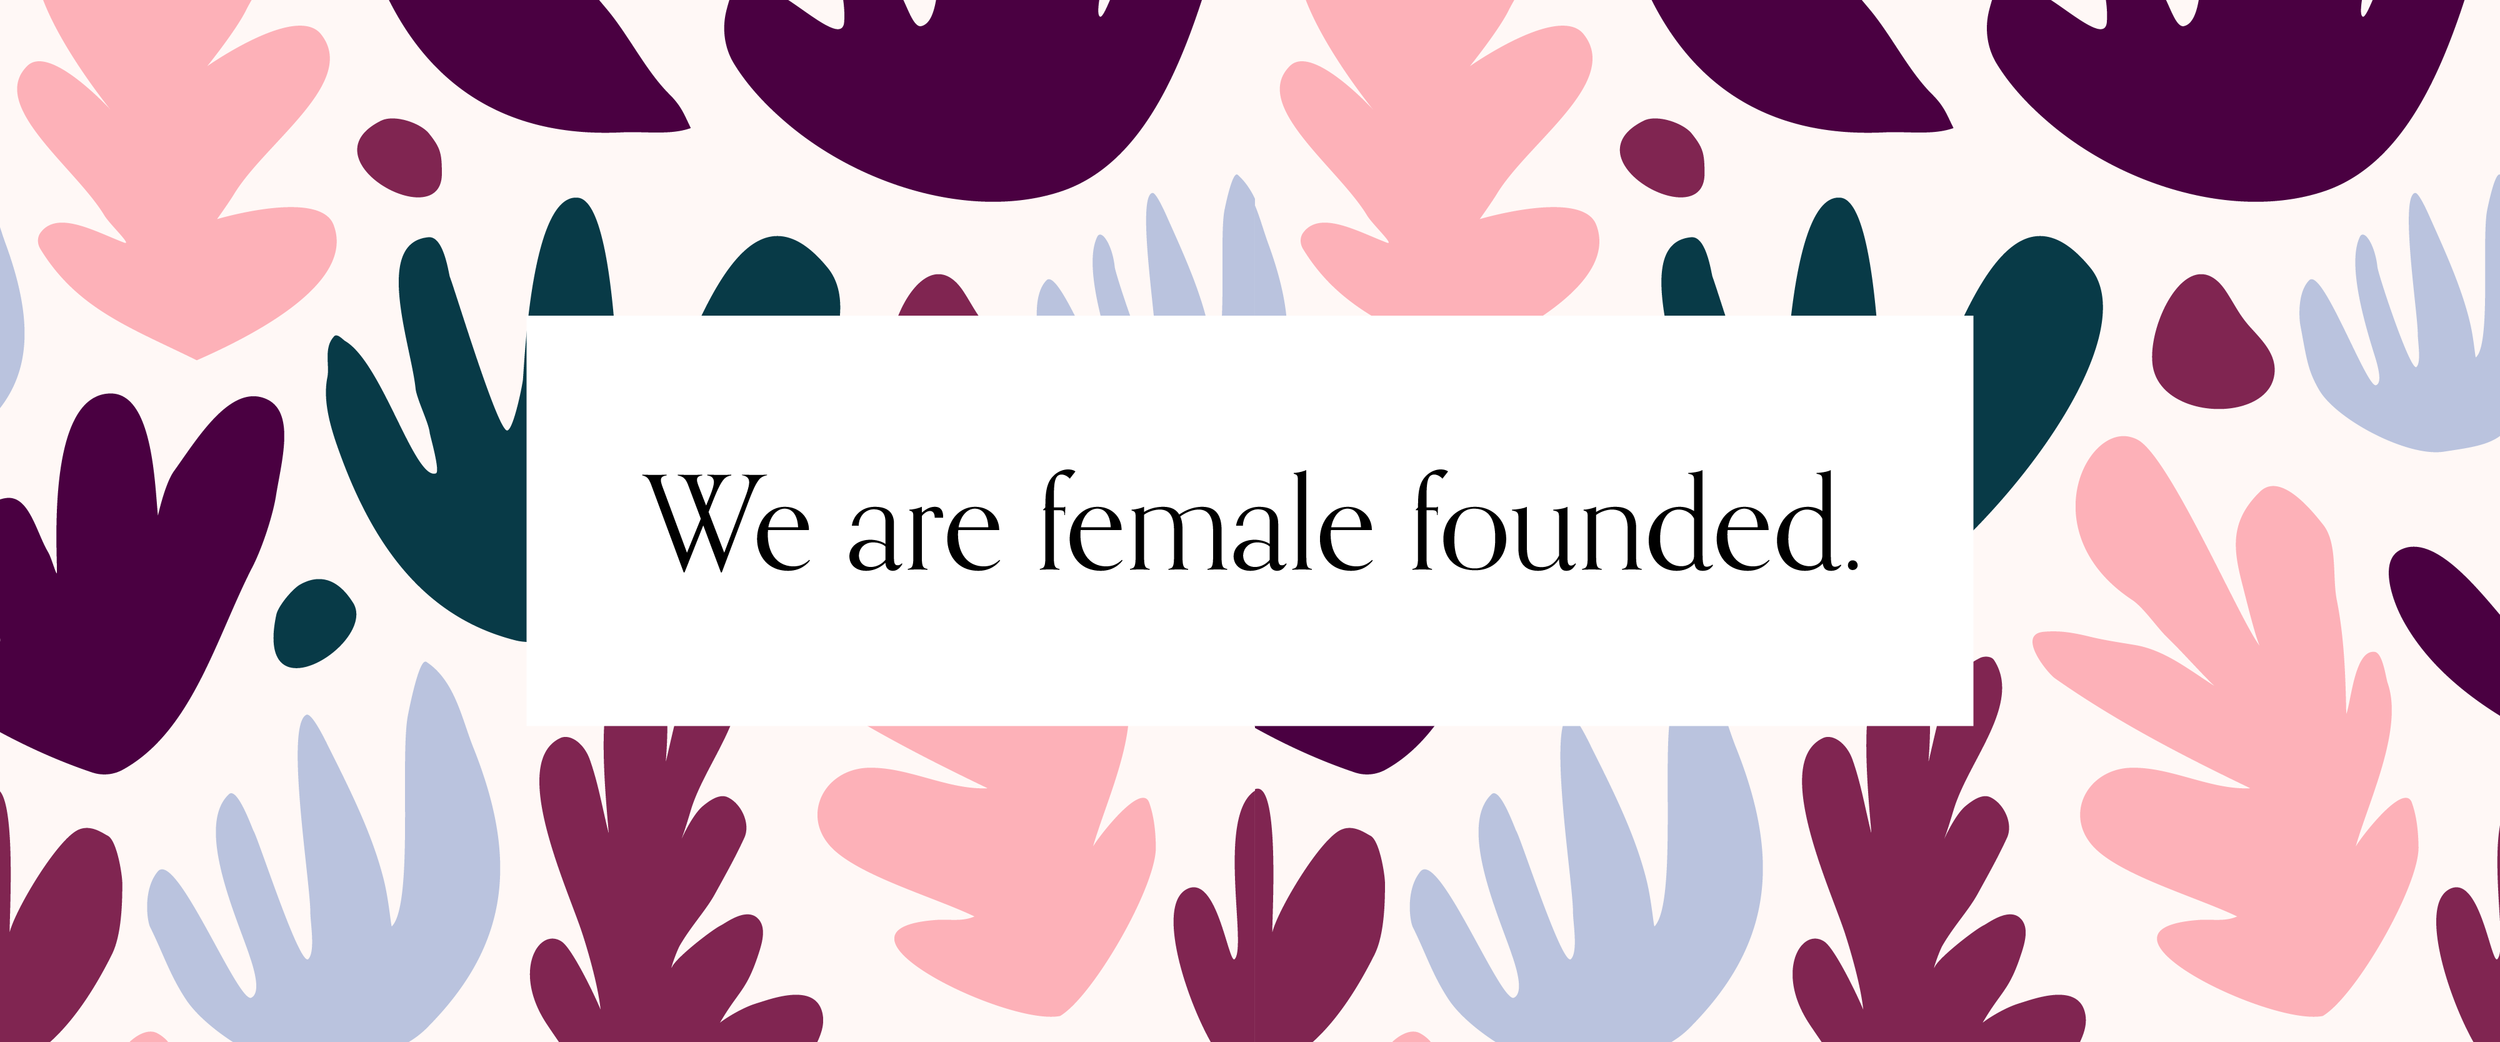 We Are Female Founded-01.png